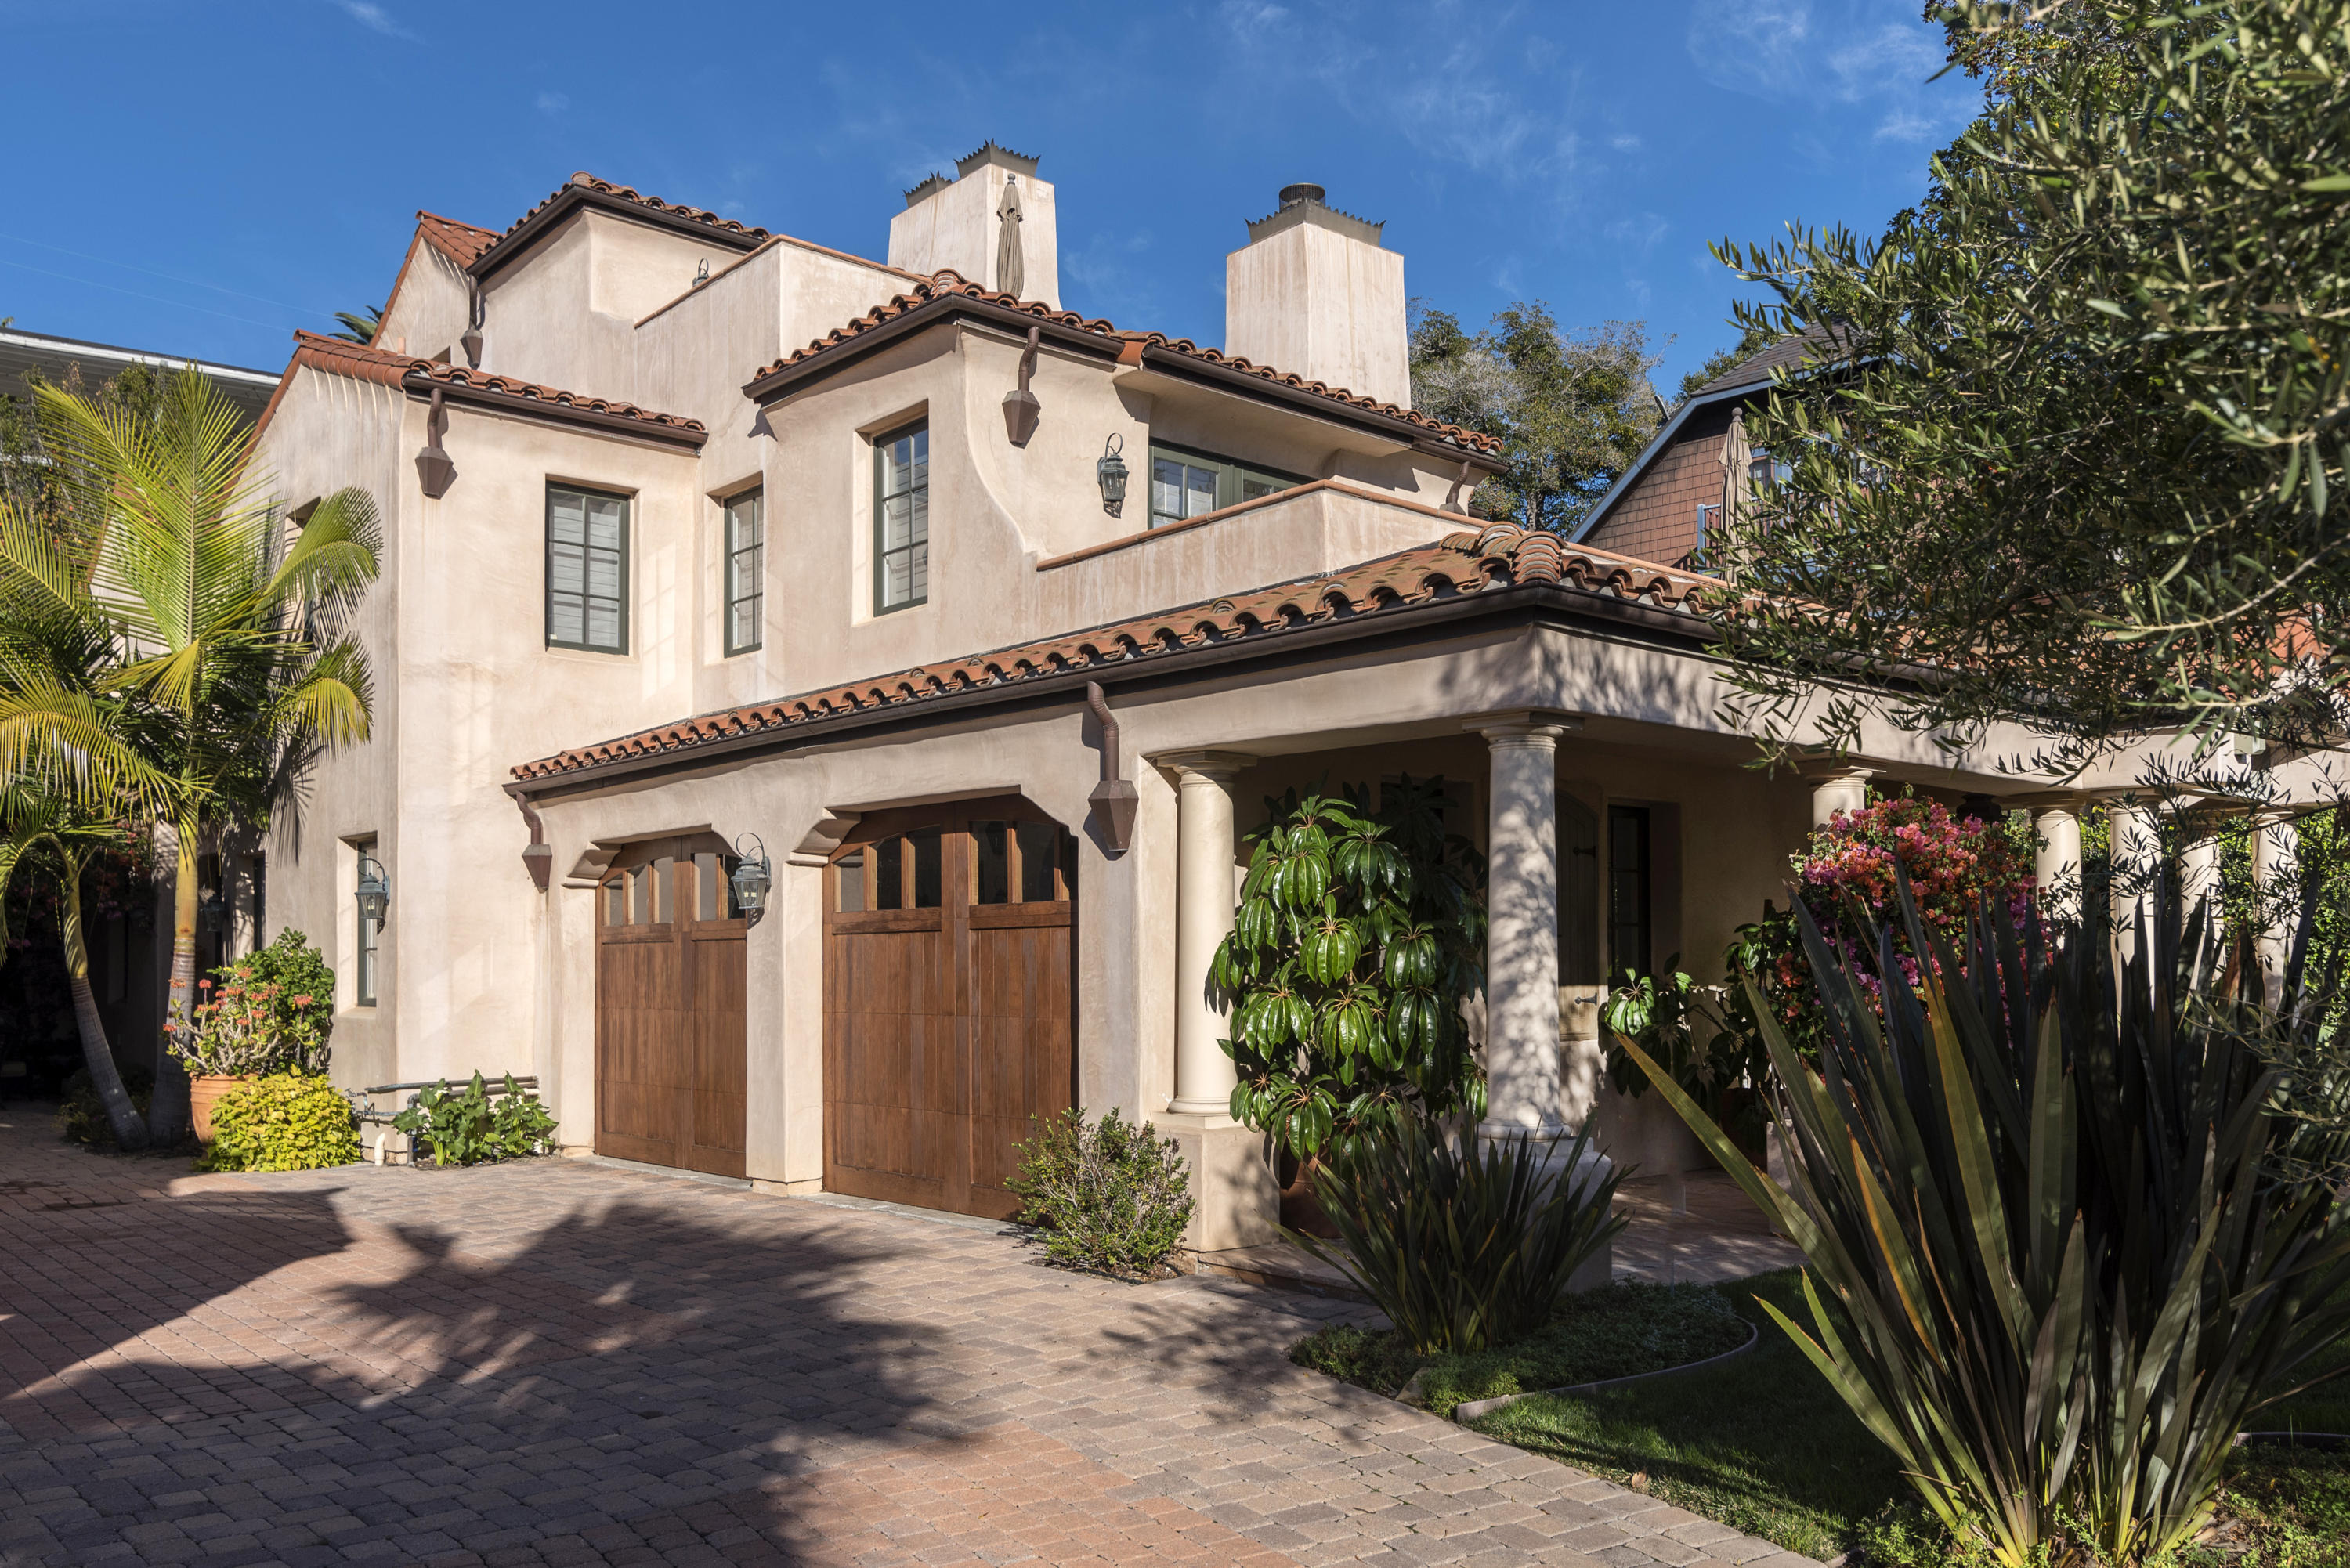 637 E Micheltorena St, Santa Barbara, California